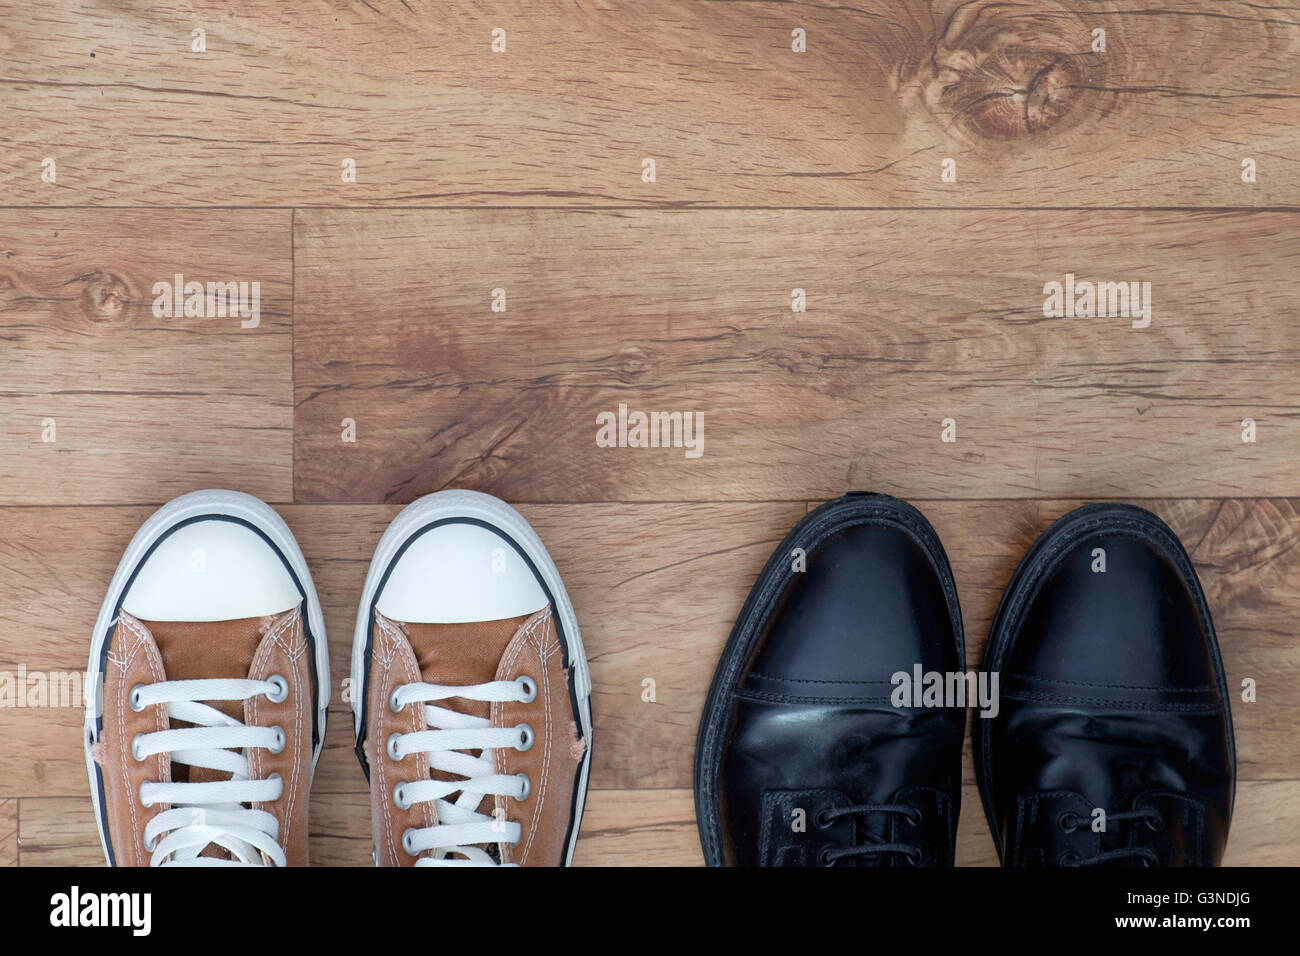 Sneakers and formal shoes - Stock Image